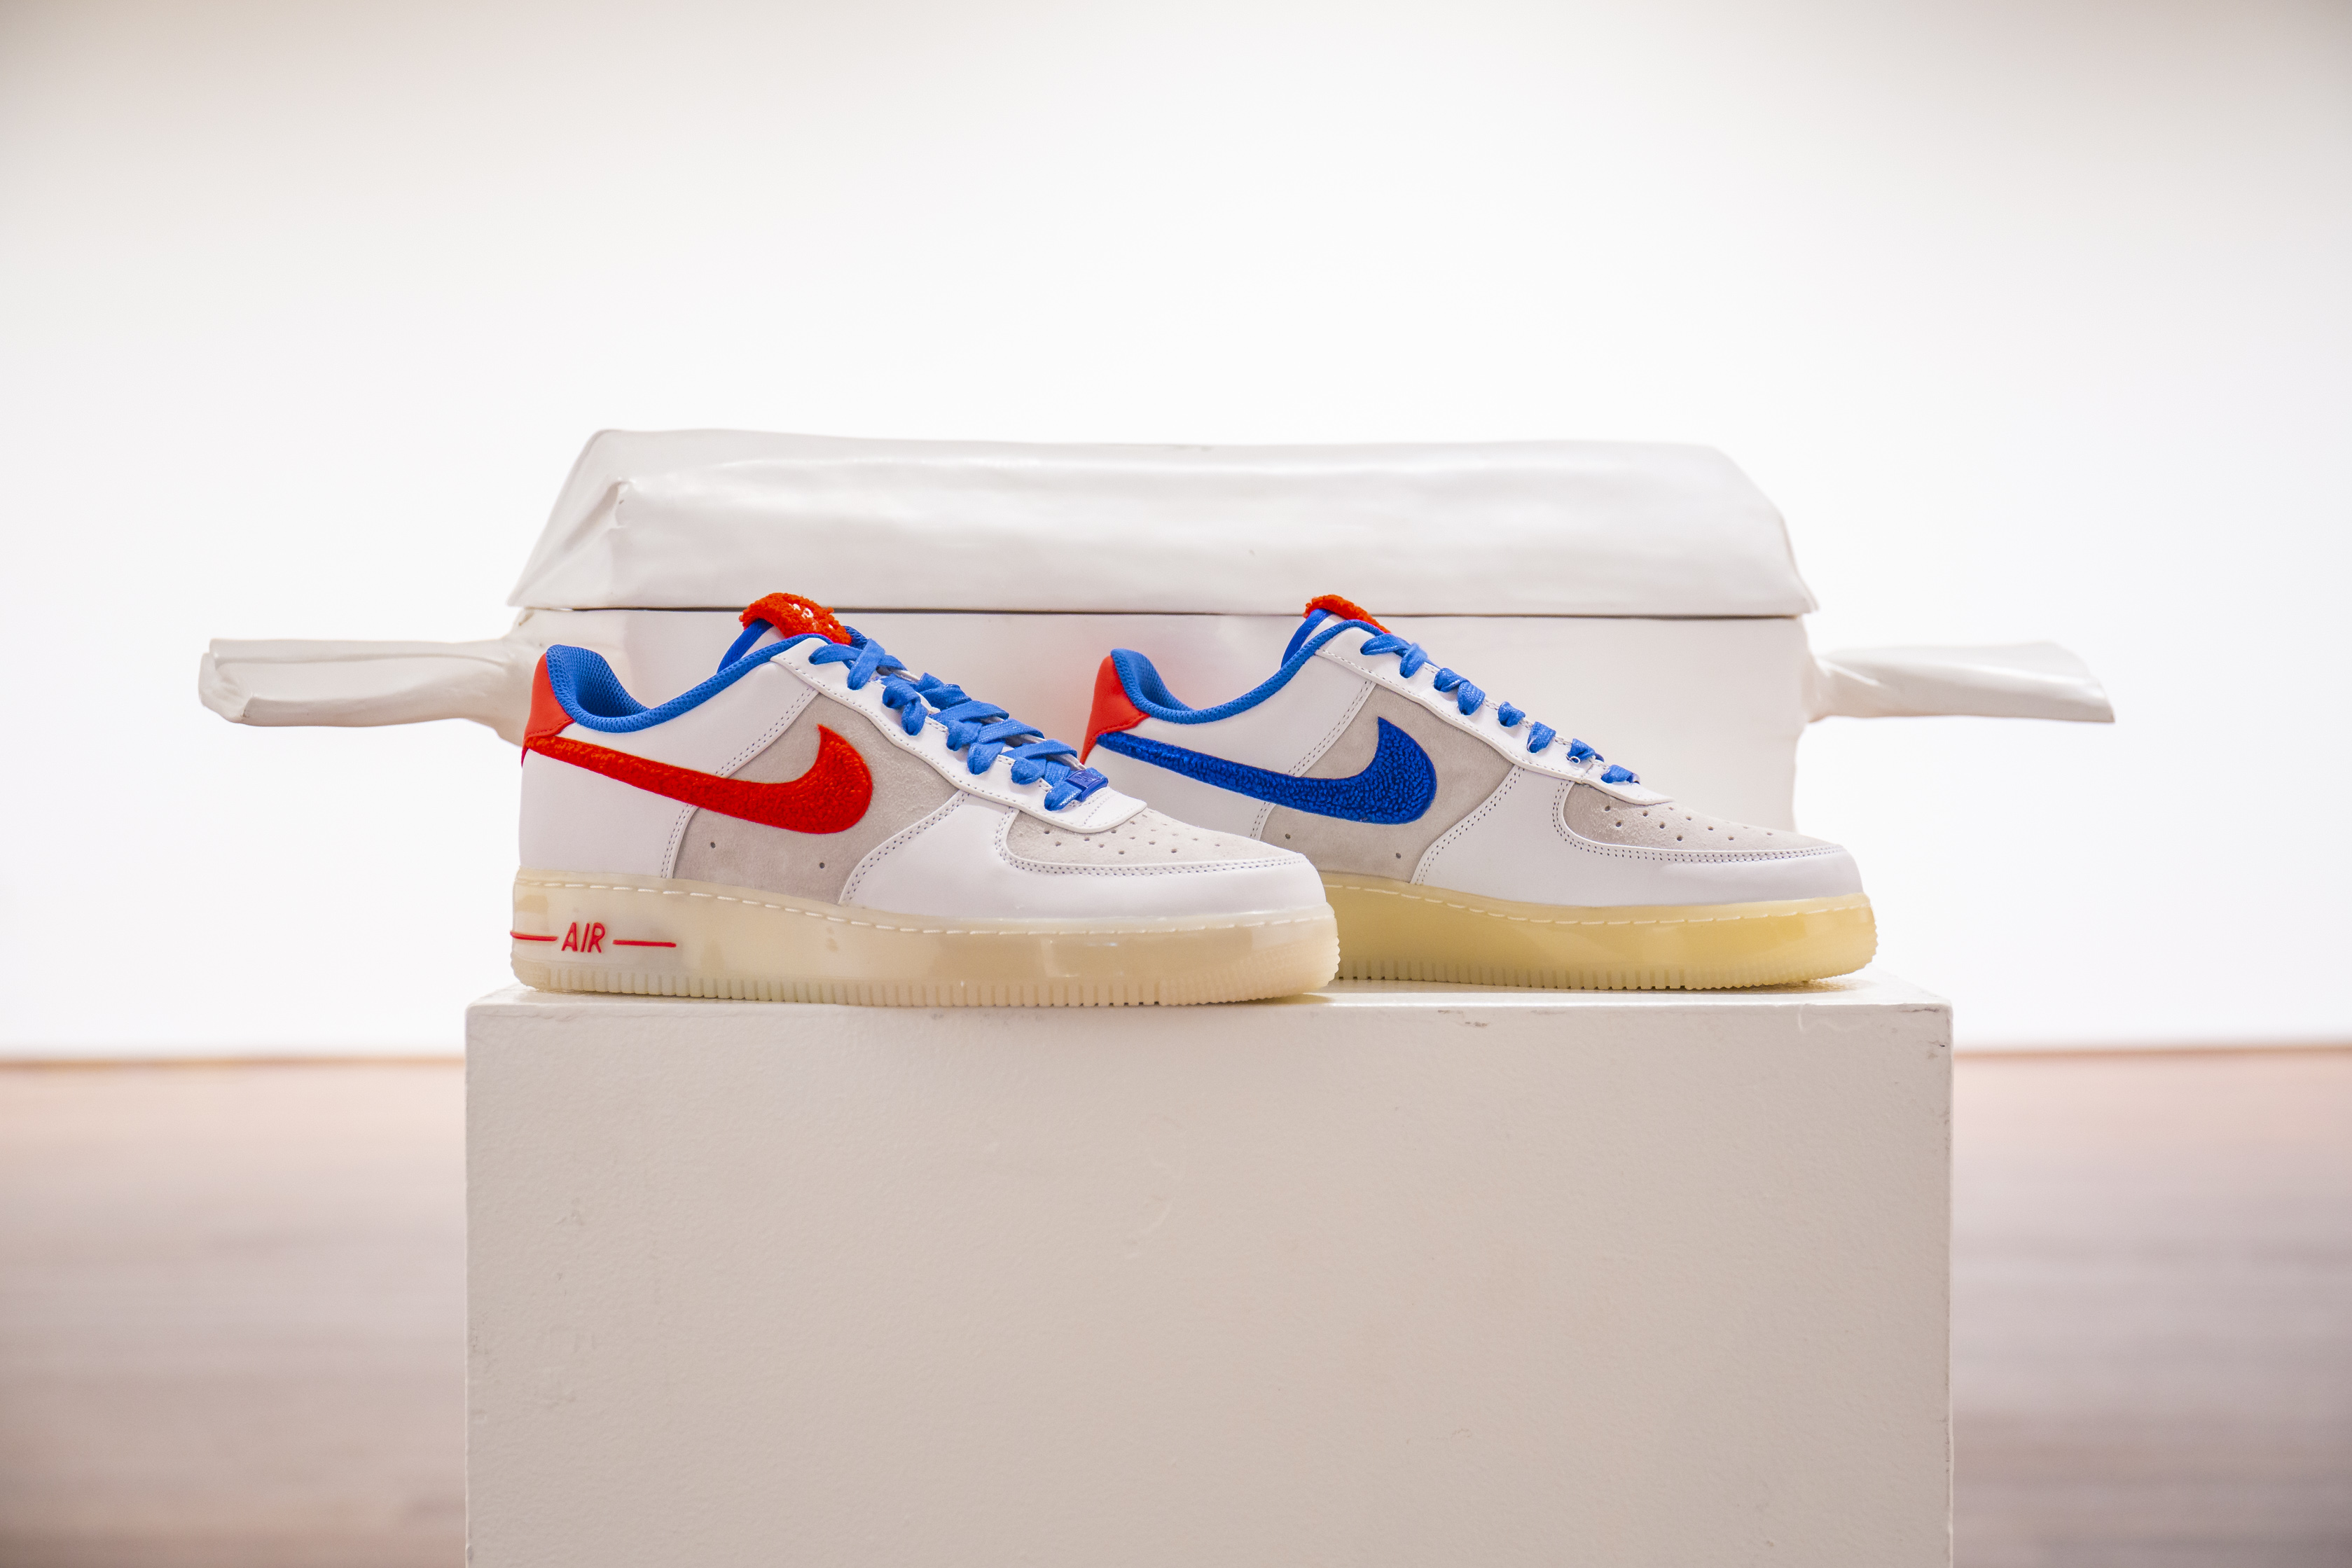 View full screen - View 1 of Lot 8212. Air Force 1 Supreme Quickstrike 'Year of the Rabbit', 2011    兔年款球鞋,2011年.